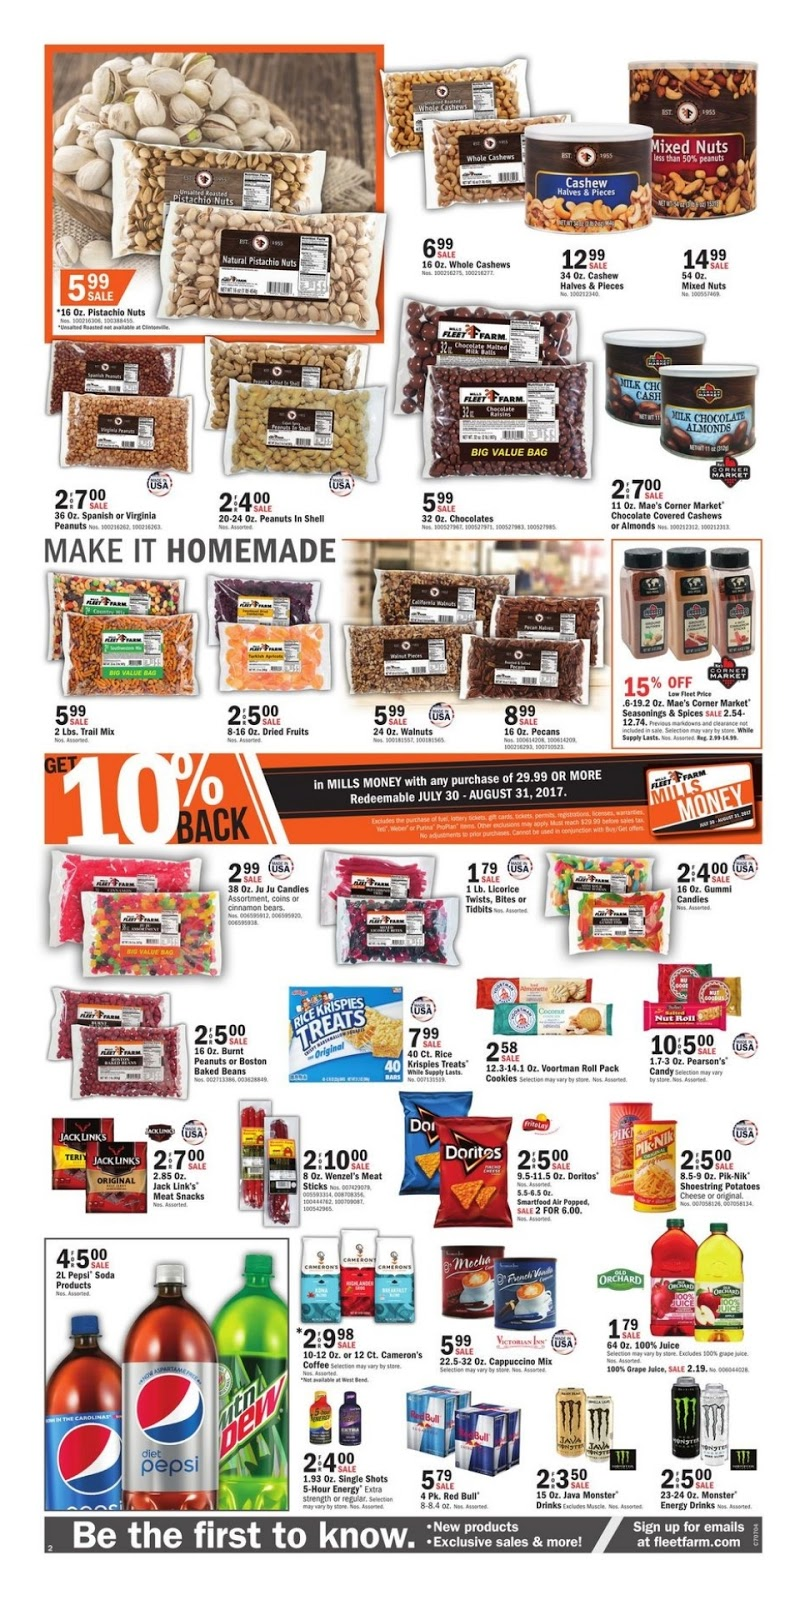 Fleet Farm Coupons Save 15 With July 19 Coupon Promo Codes >> Fleetfarm Ad Quill Com Customer Reviews